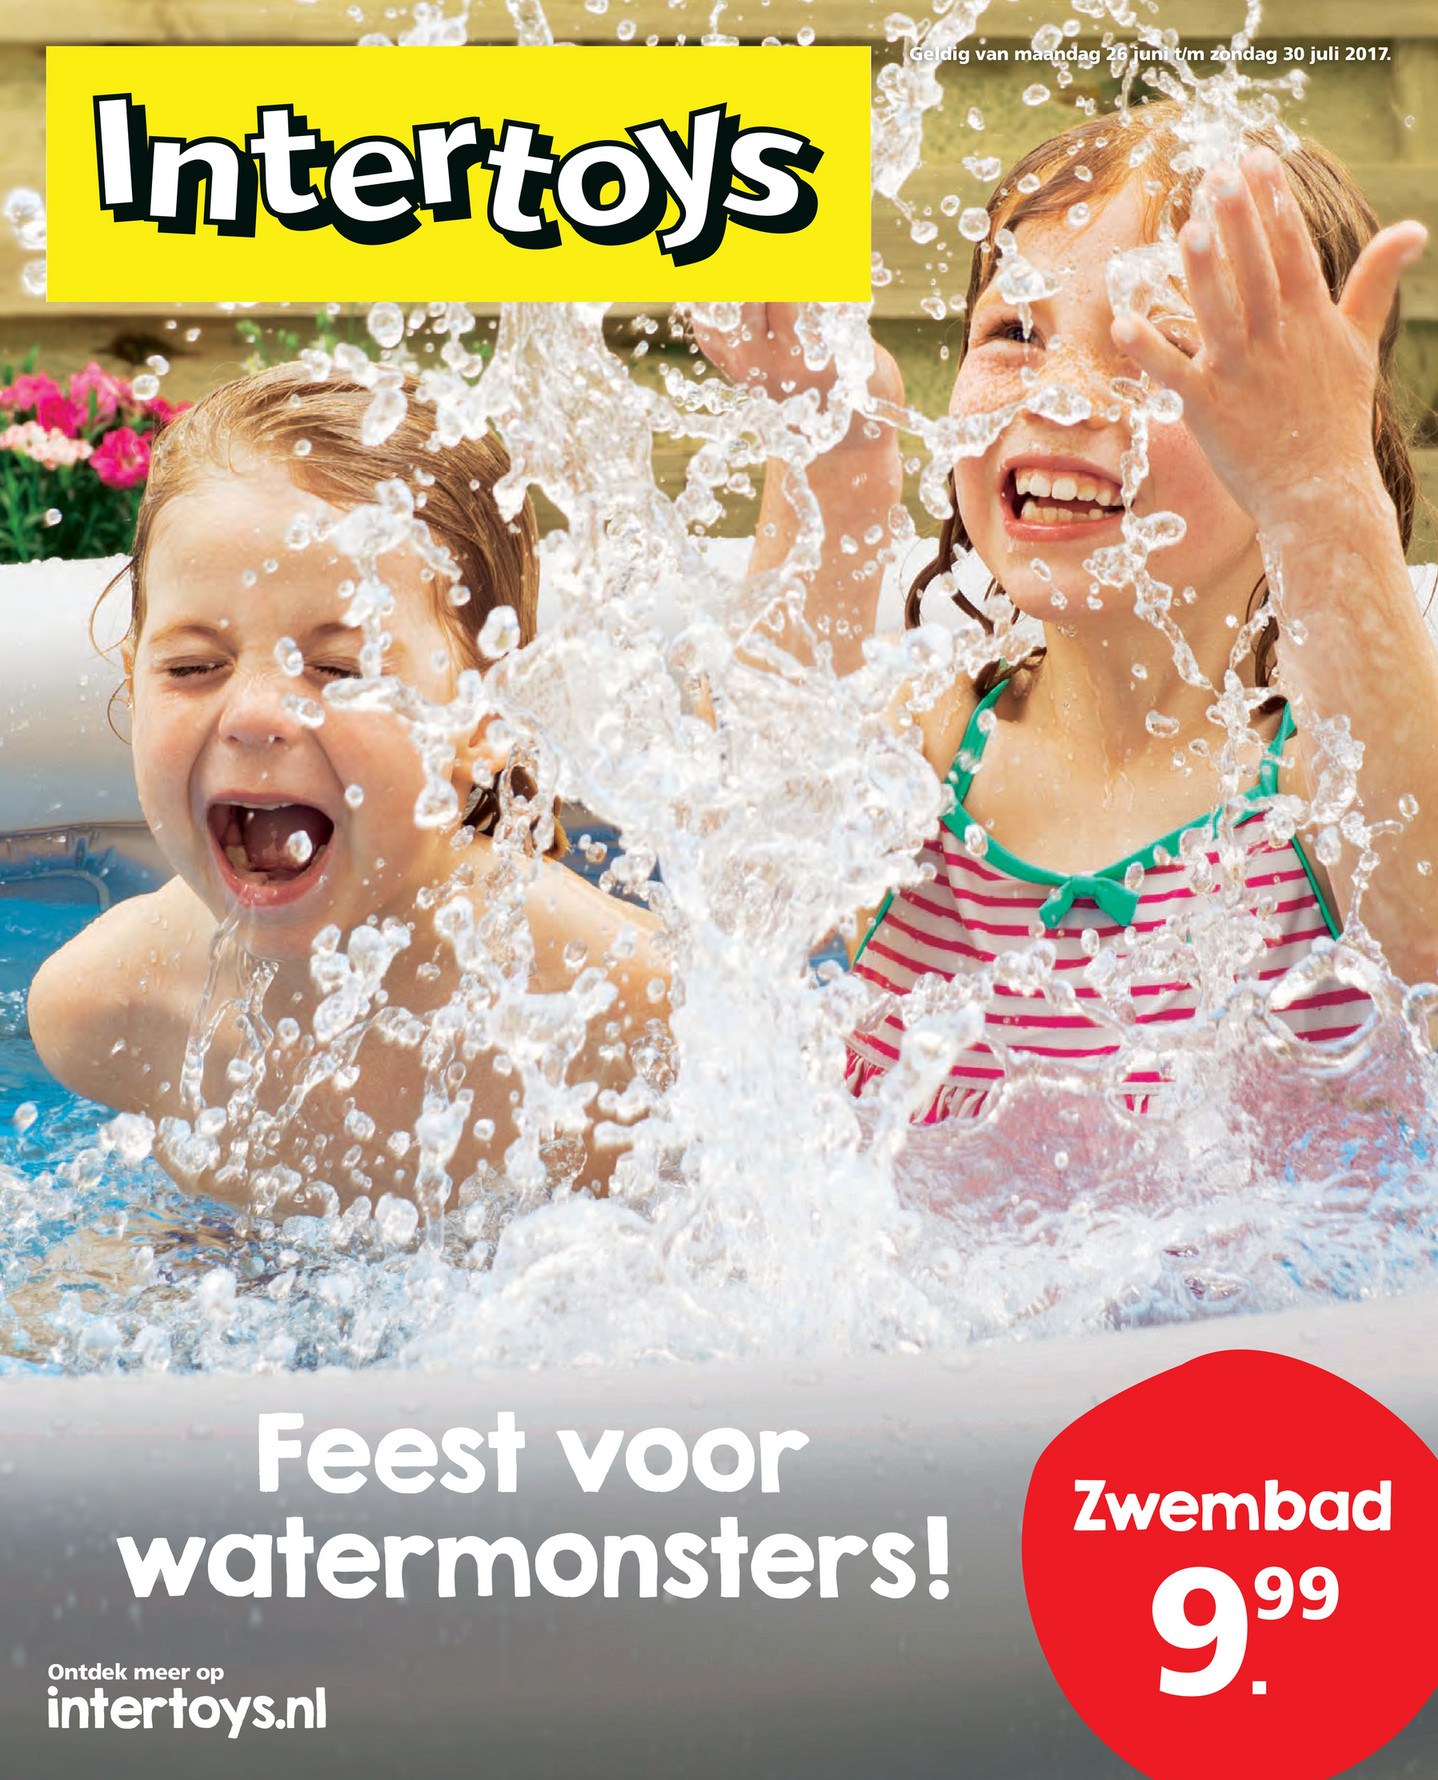 Zwembad Accessoires Intertoys Reclamefolder Nl Intertoys Week26 17 Pagina 18 19